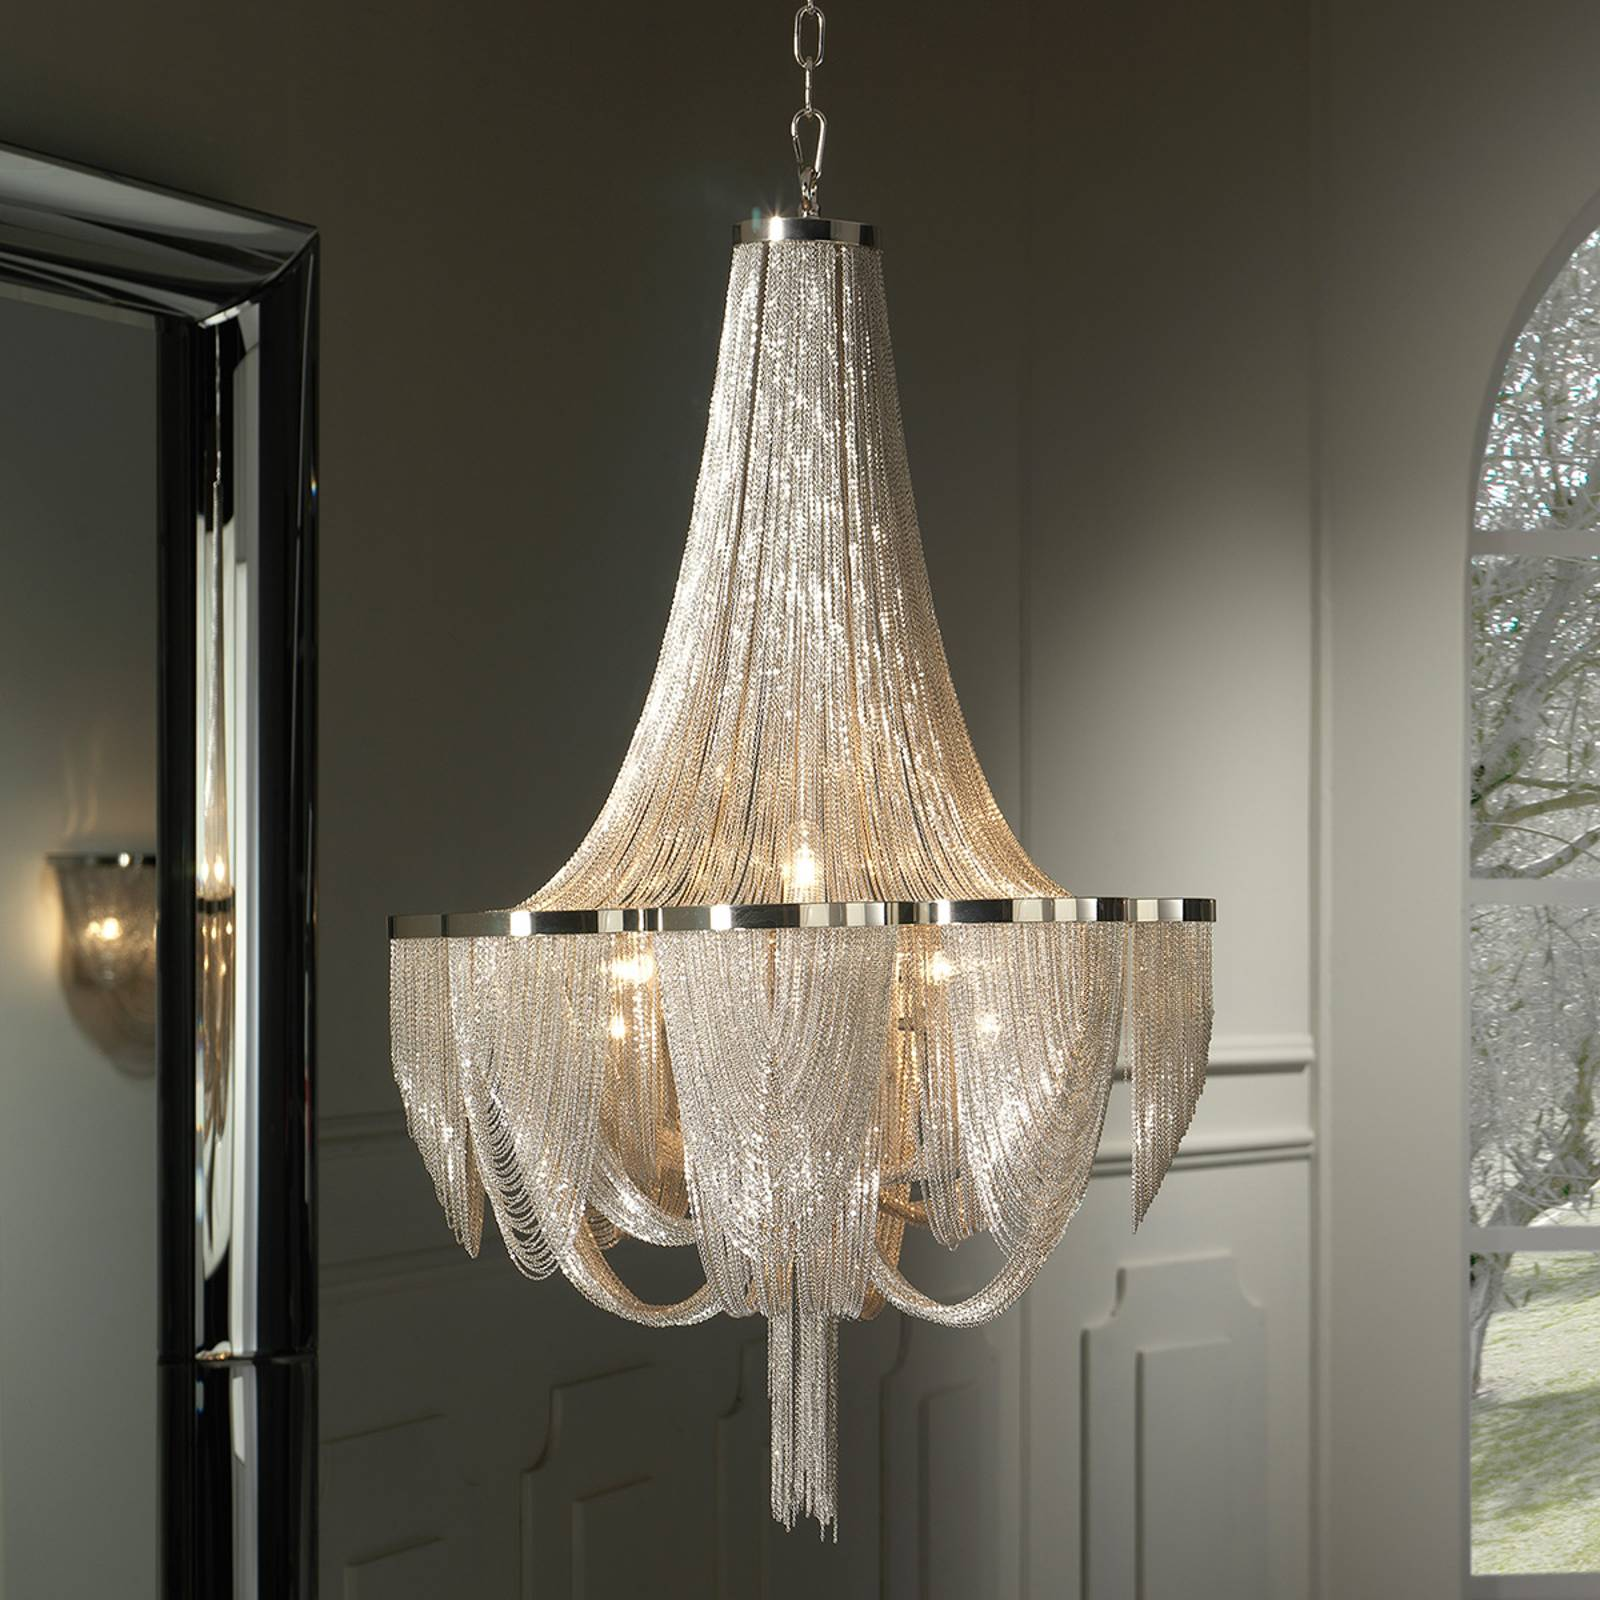 Glorious chandelier Minerva from Schuller